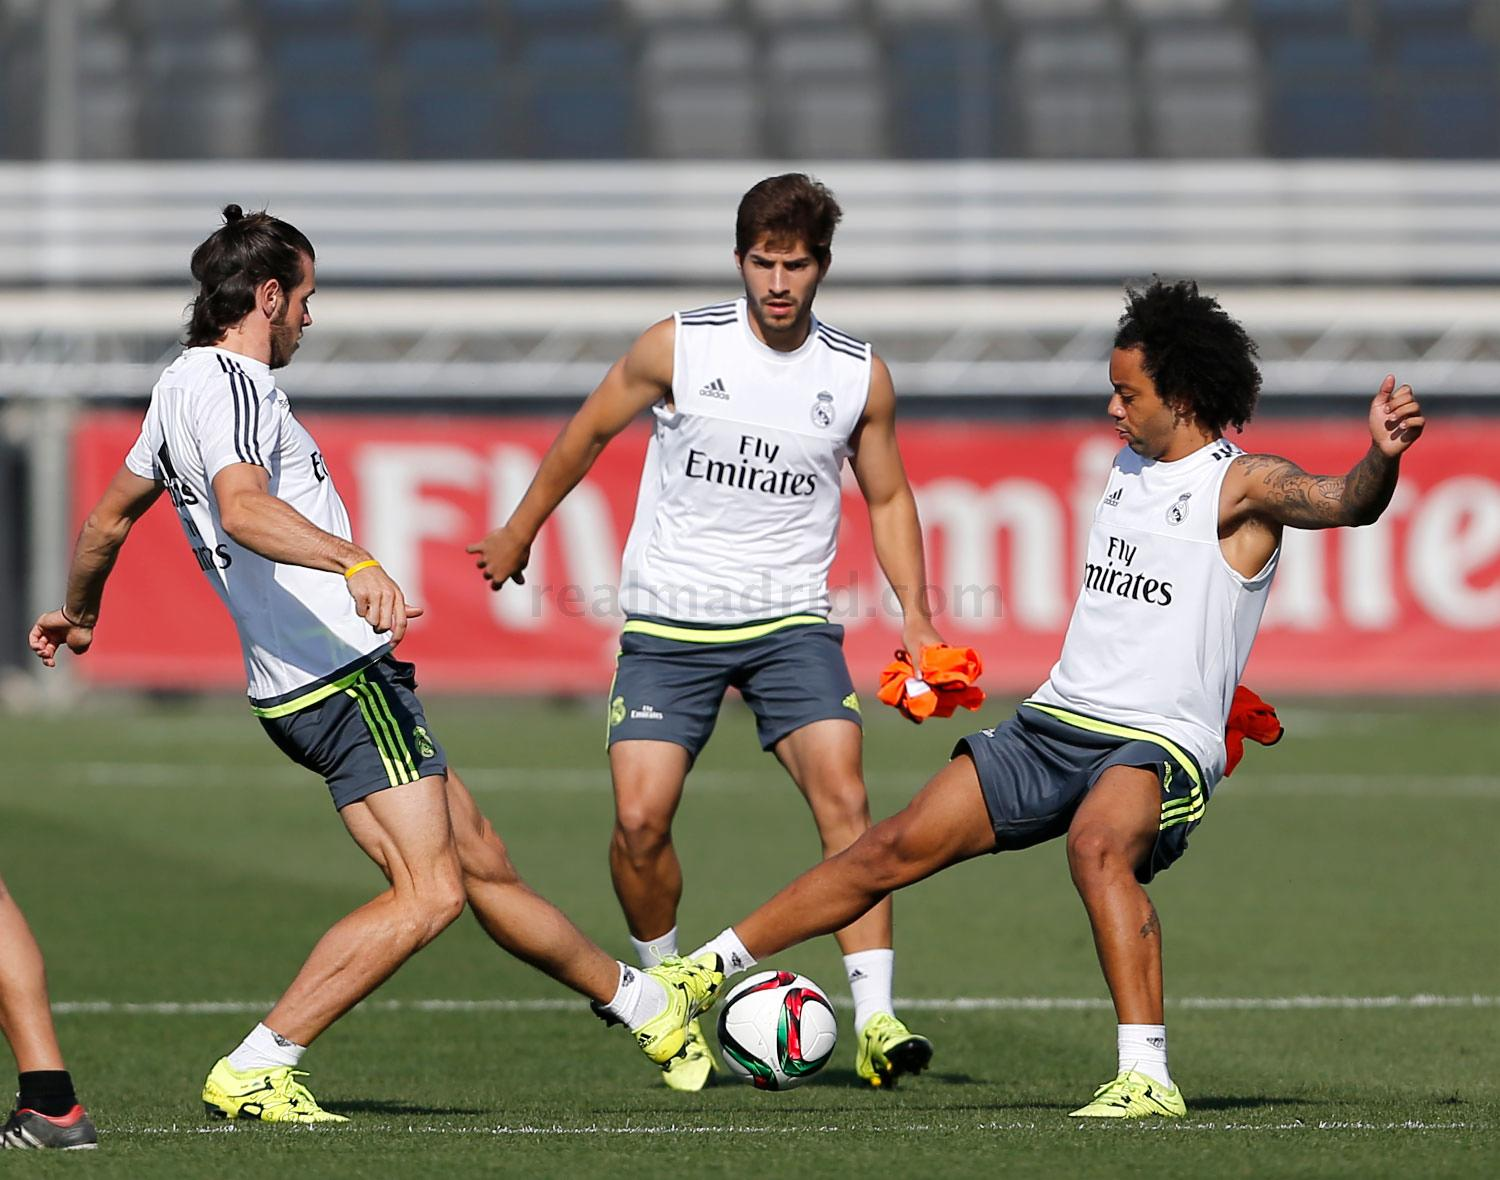 Real Madrid - Entrenamiento del Real Madrid - 17-08-2015